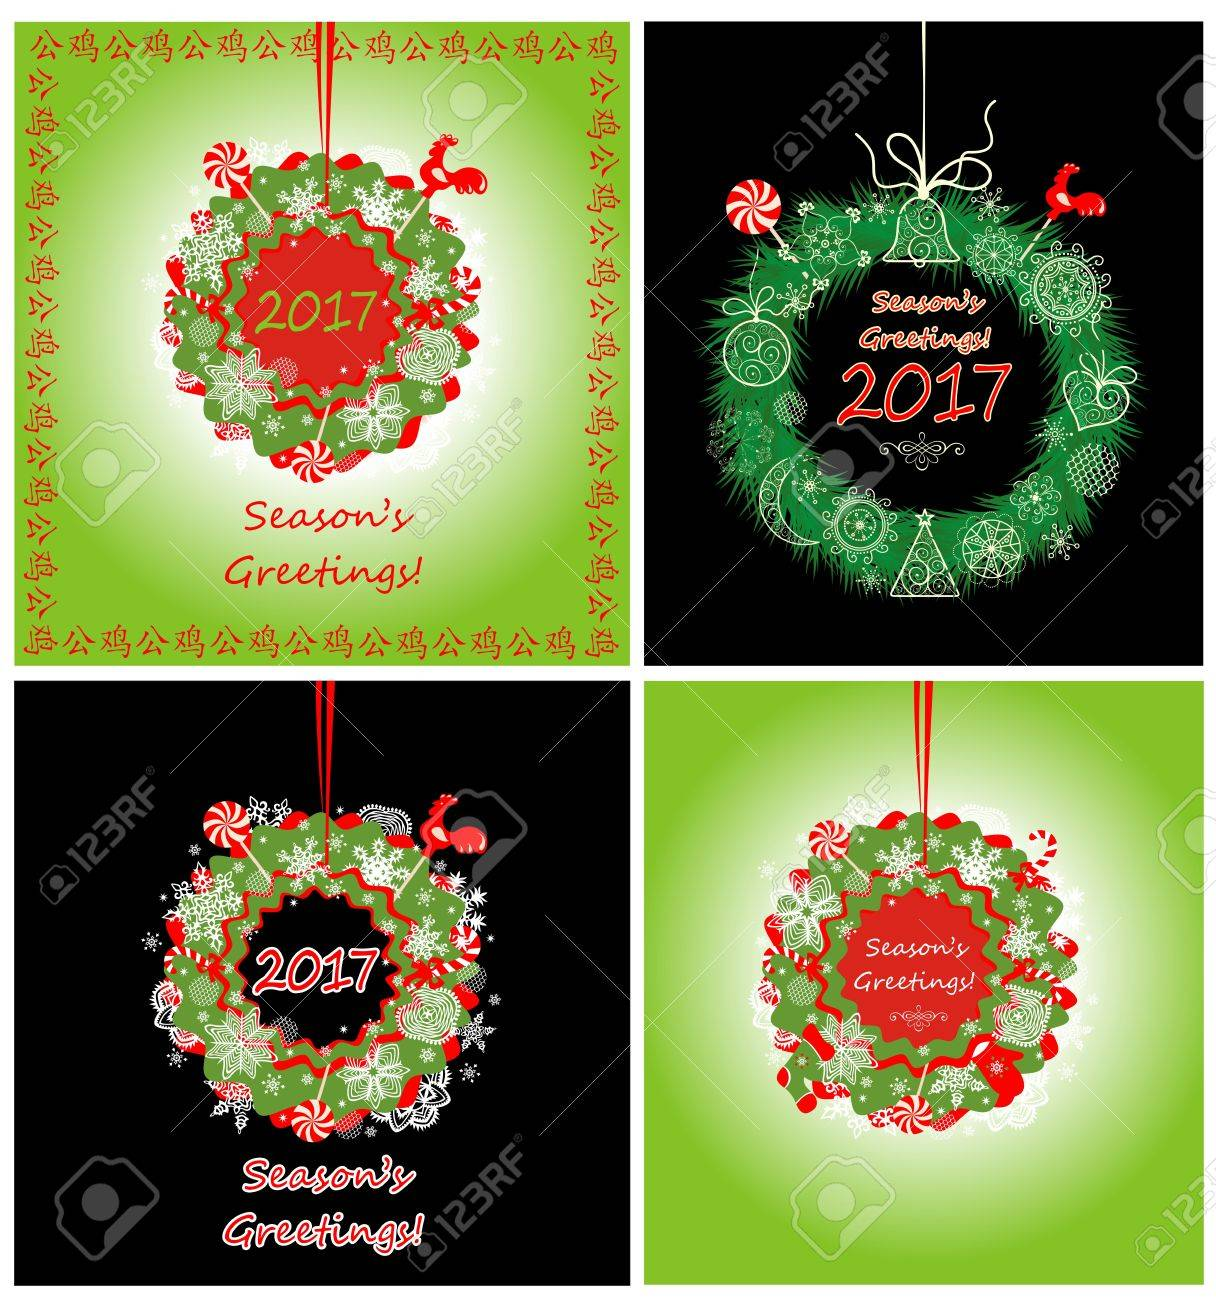 Greeting Cards With Hanging Wreath For New Year Royalty Free